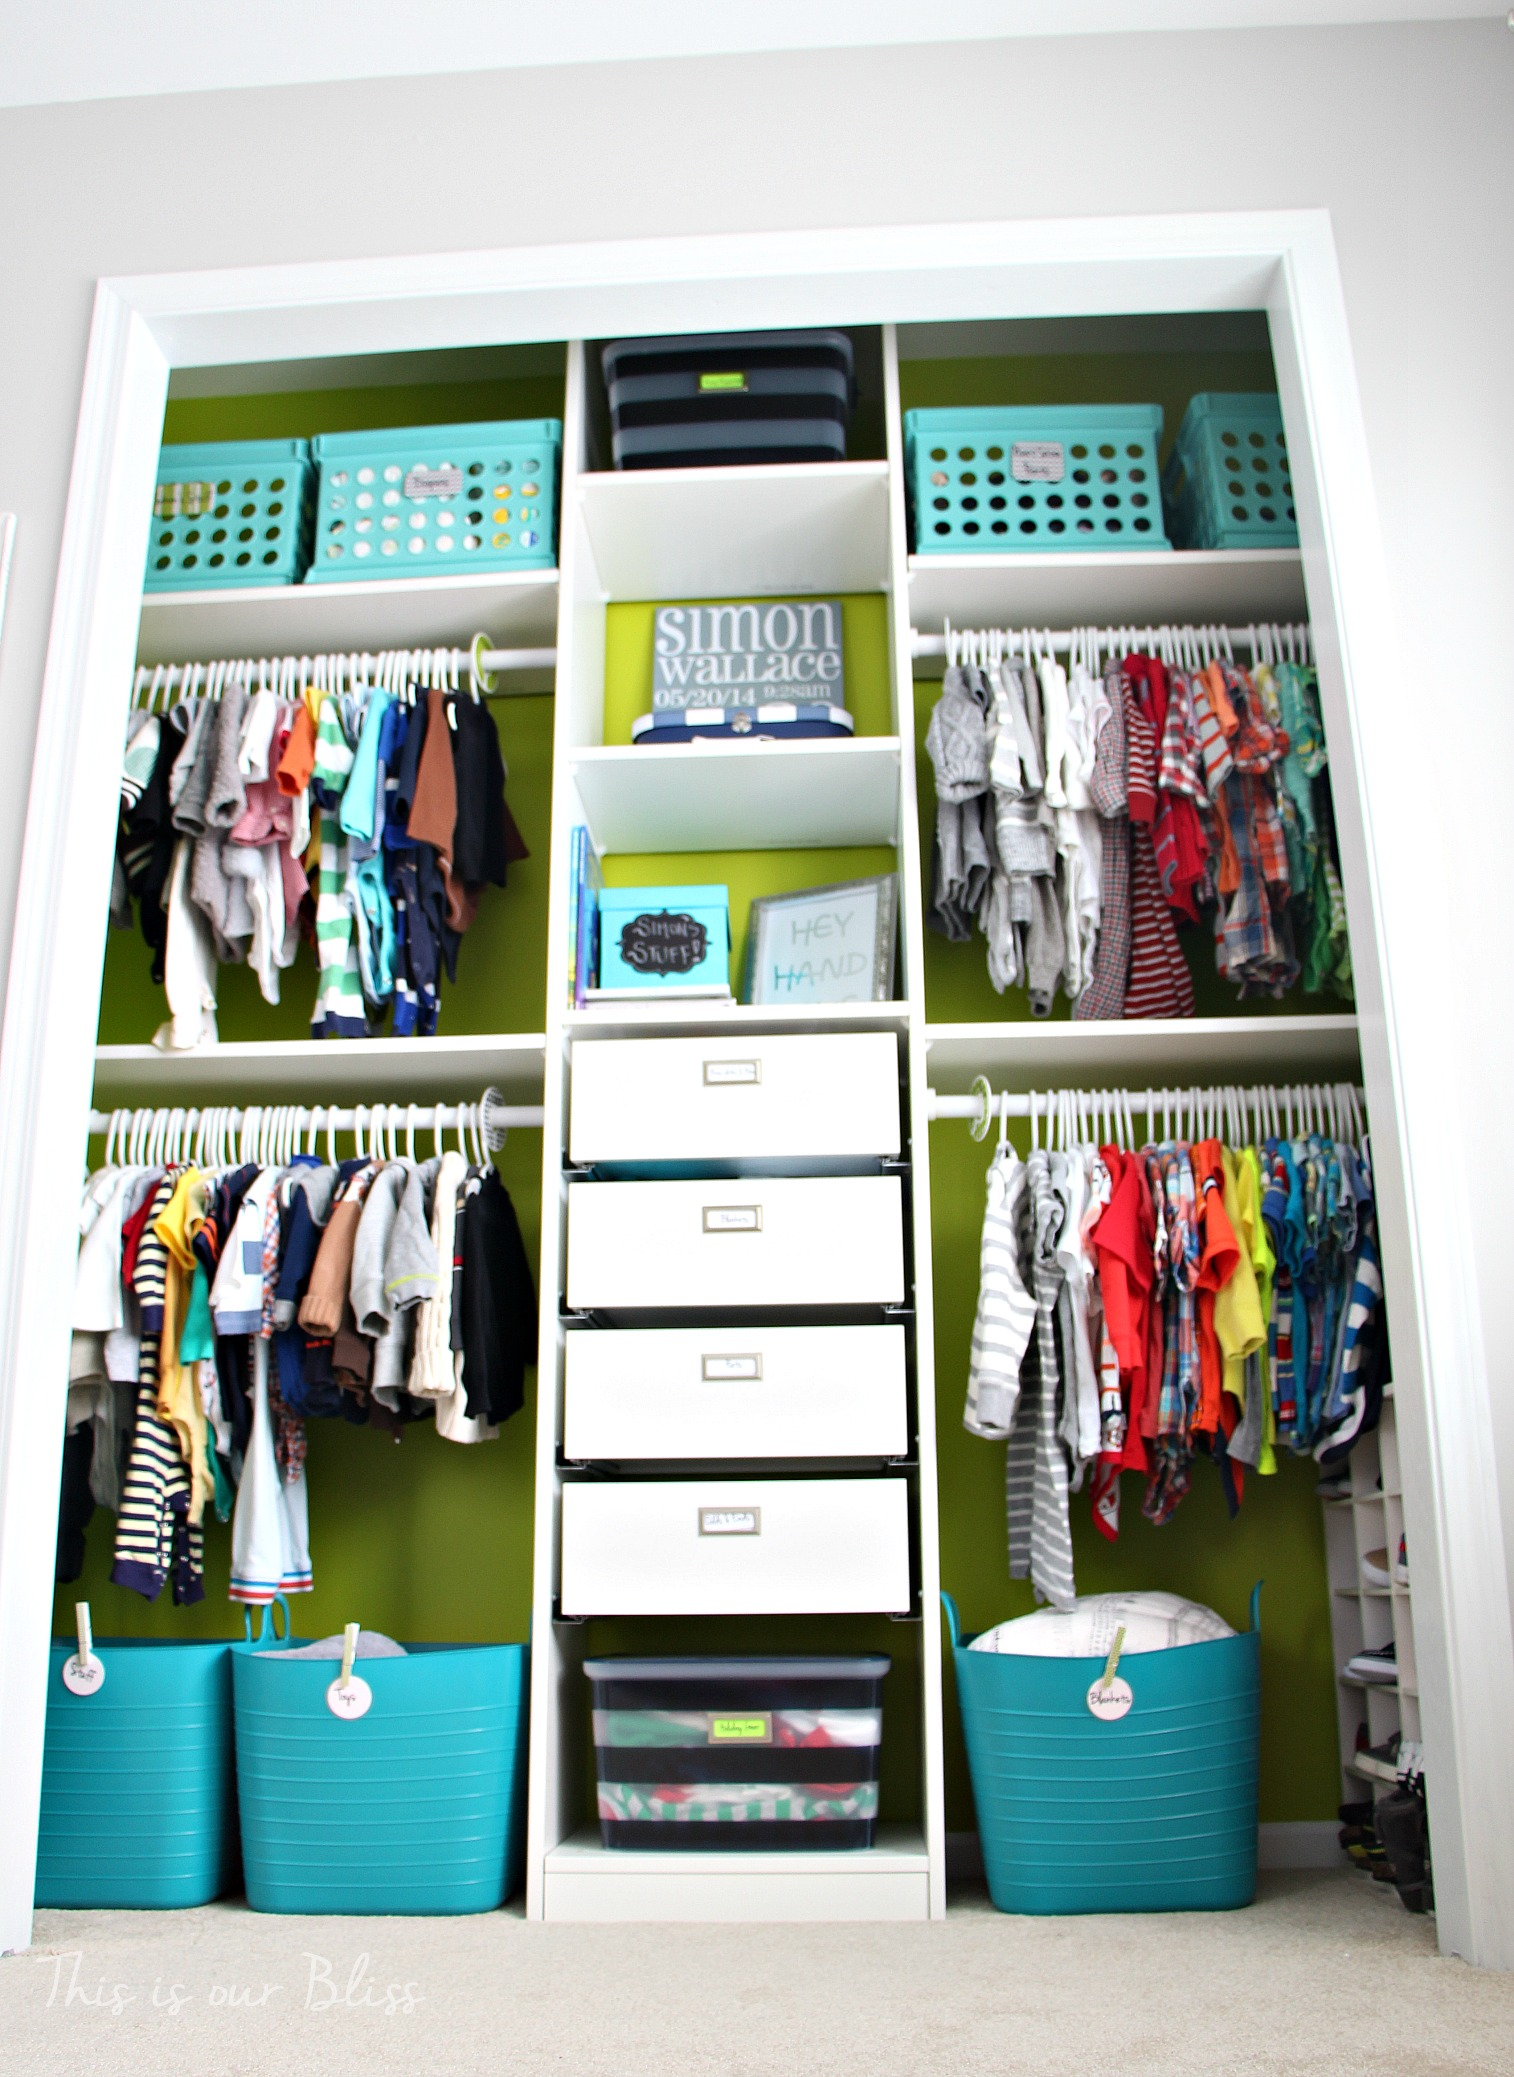 Nursery closet details part 2 accessories labels for Baby organizer ideas